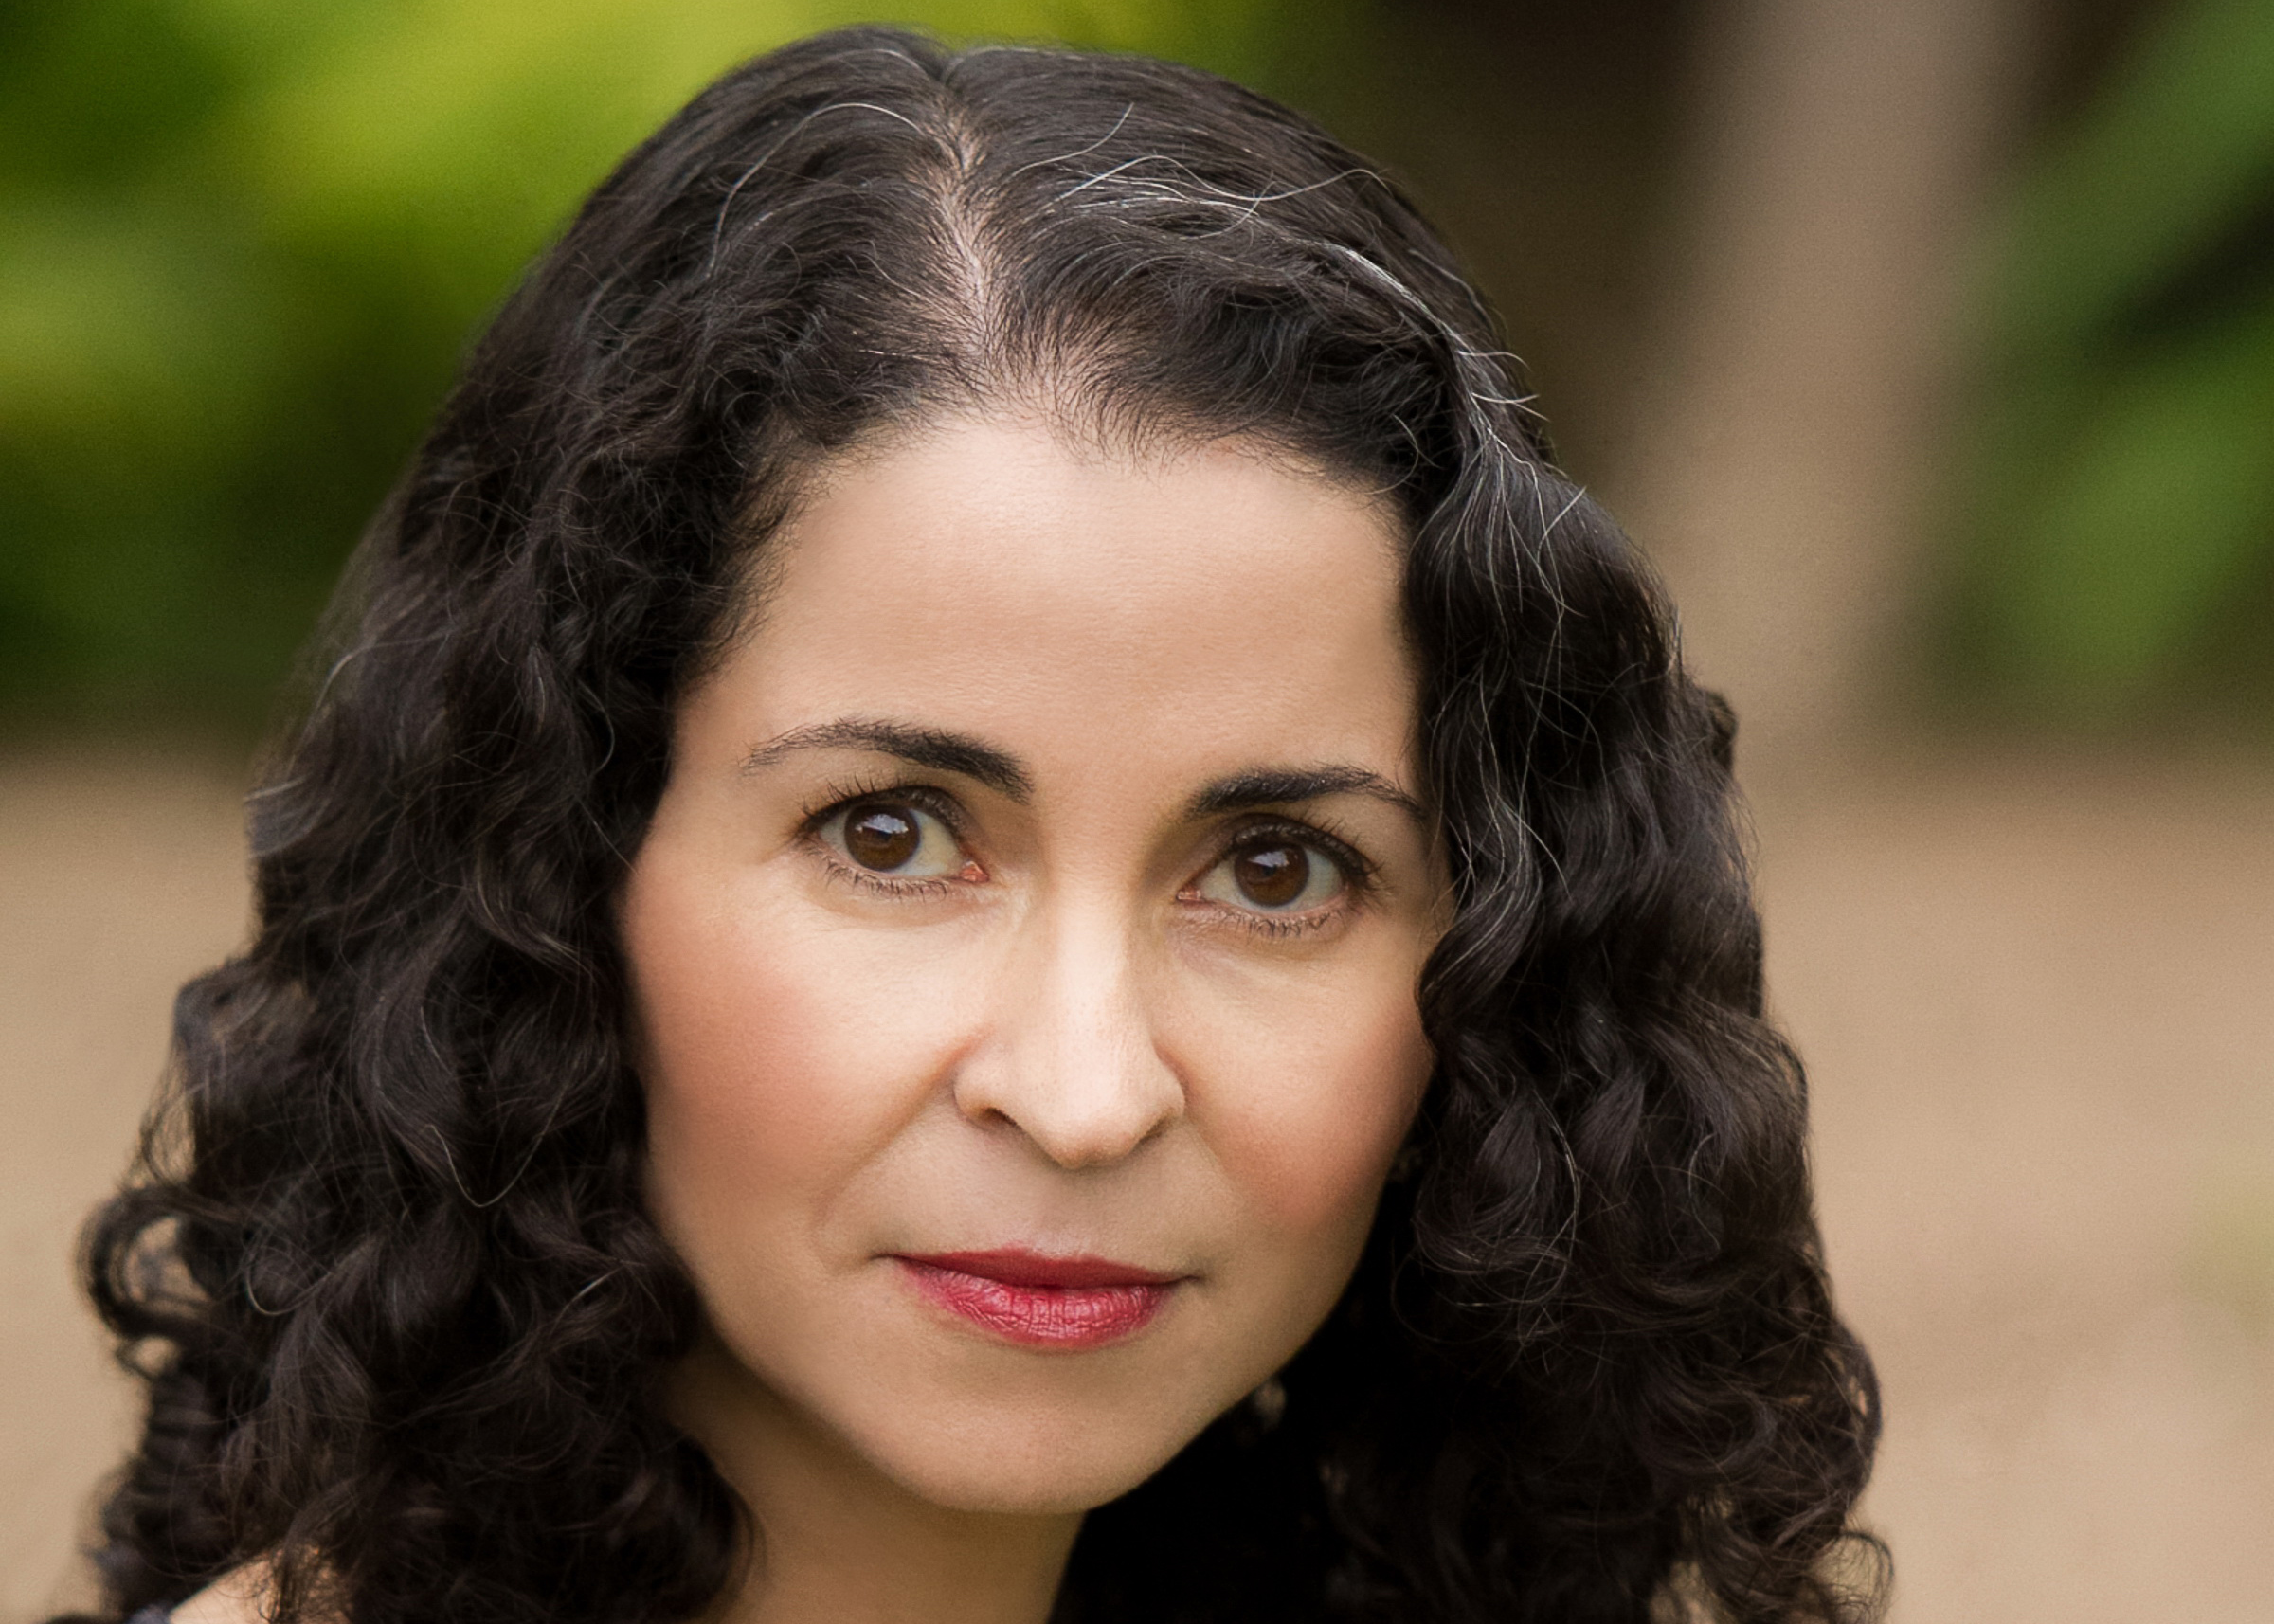 Author Laila Lalami was born in Rabat, Morocco.